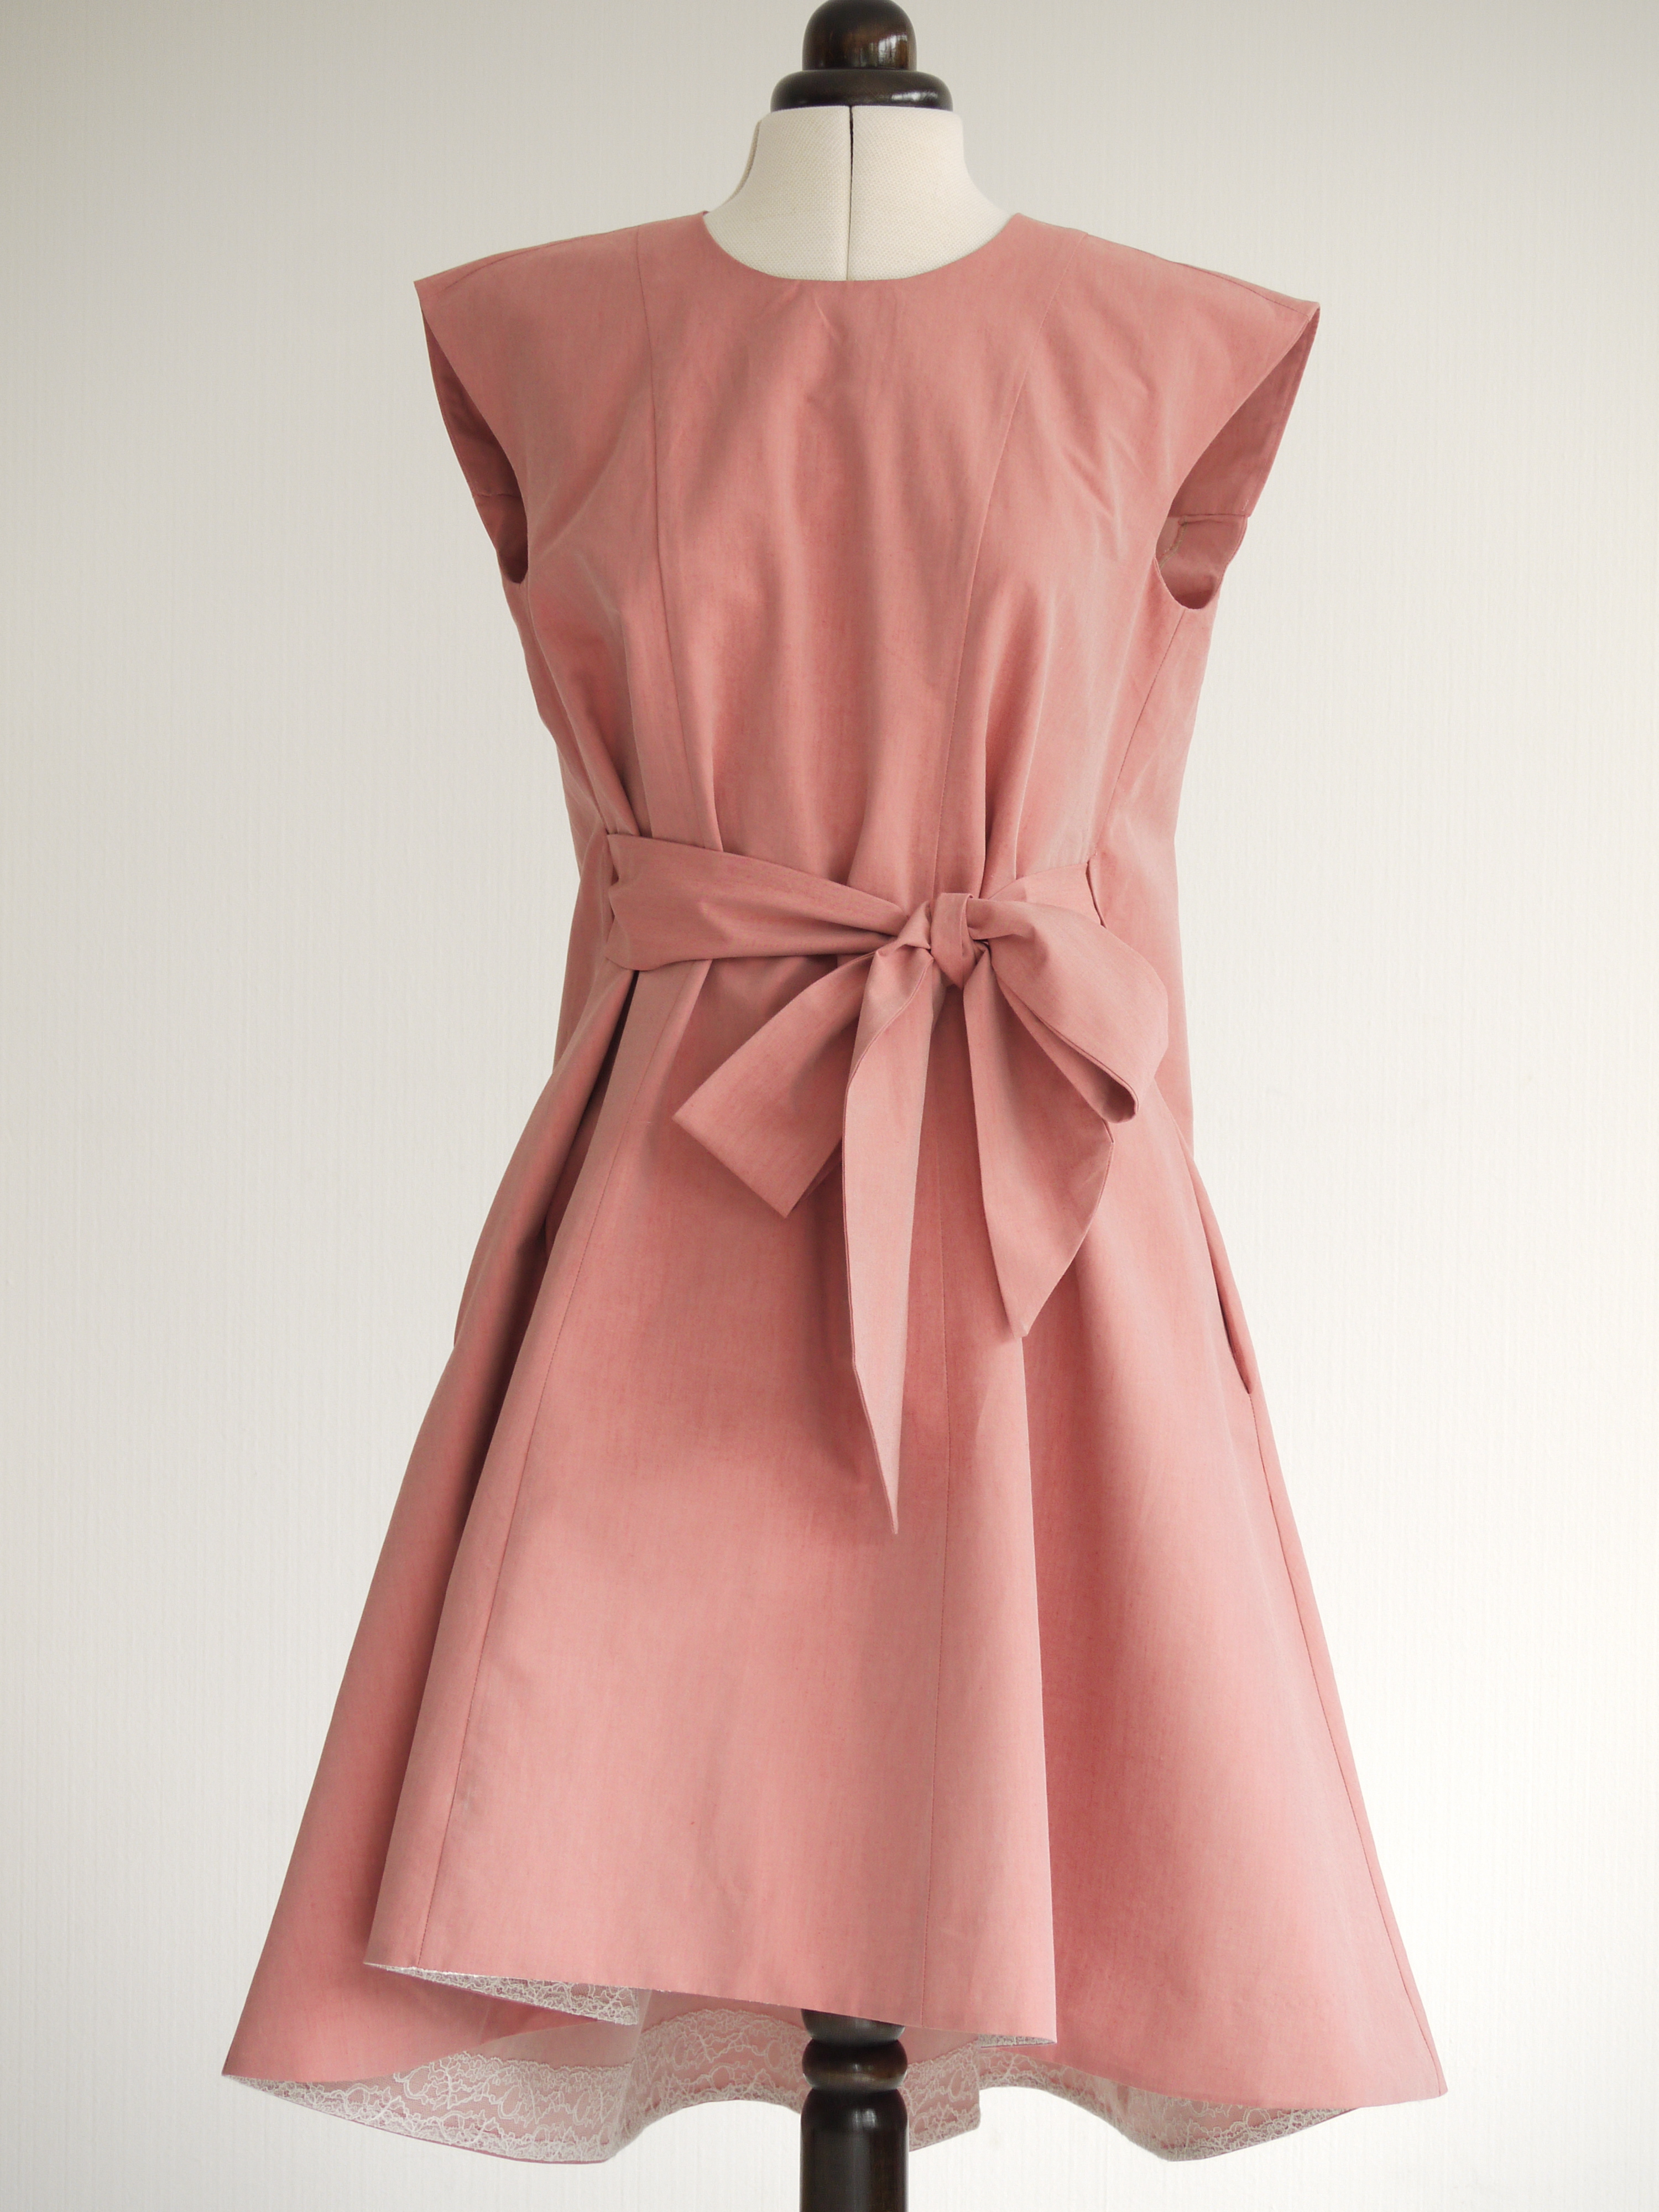 McCall's M6553 dress in pink cotton gabardine on my dress-form Beatrice